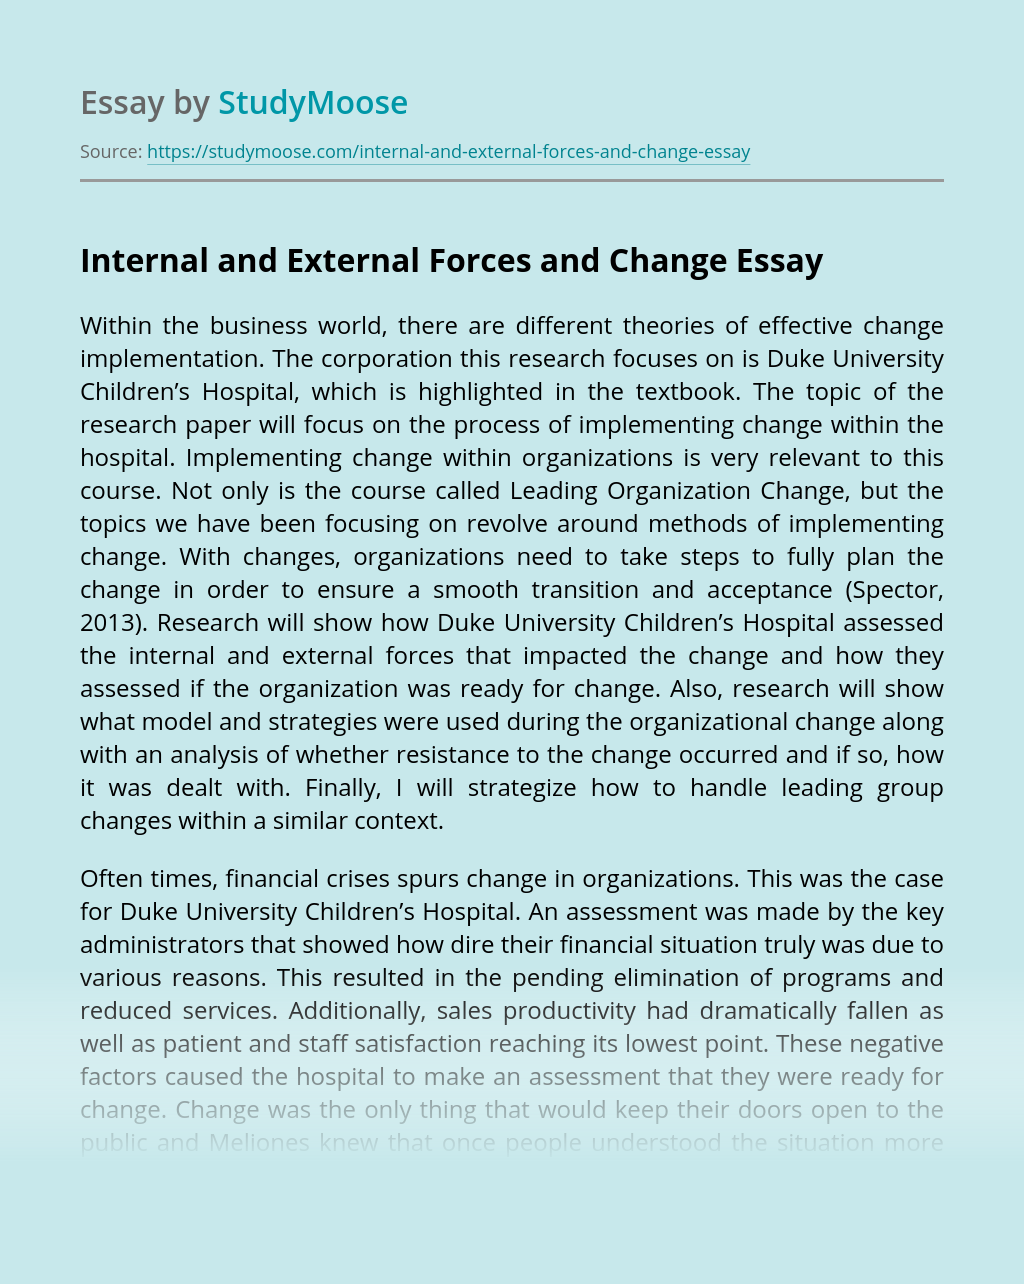 Internal and External Forces and Change